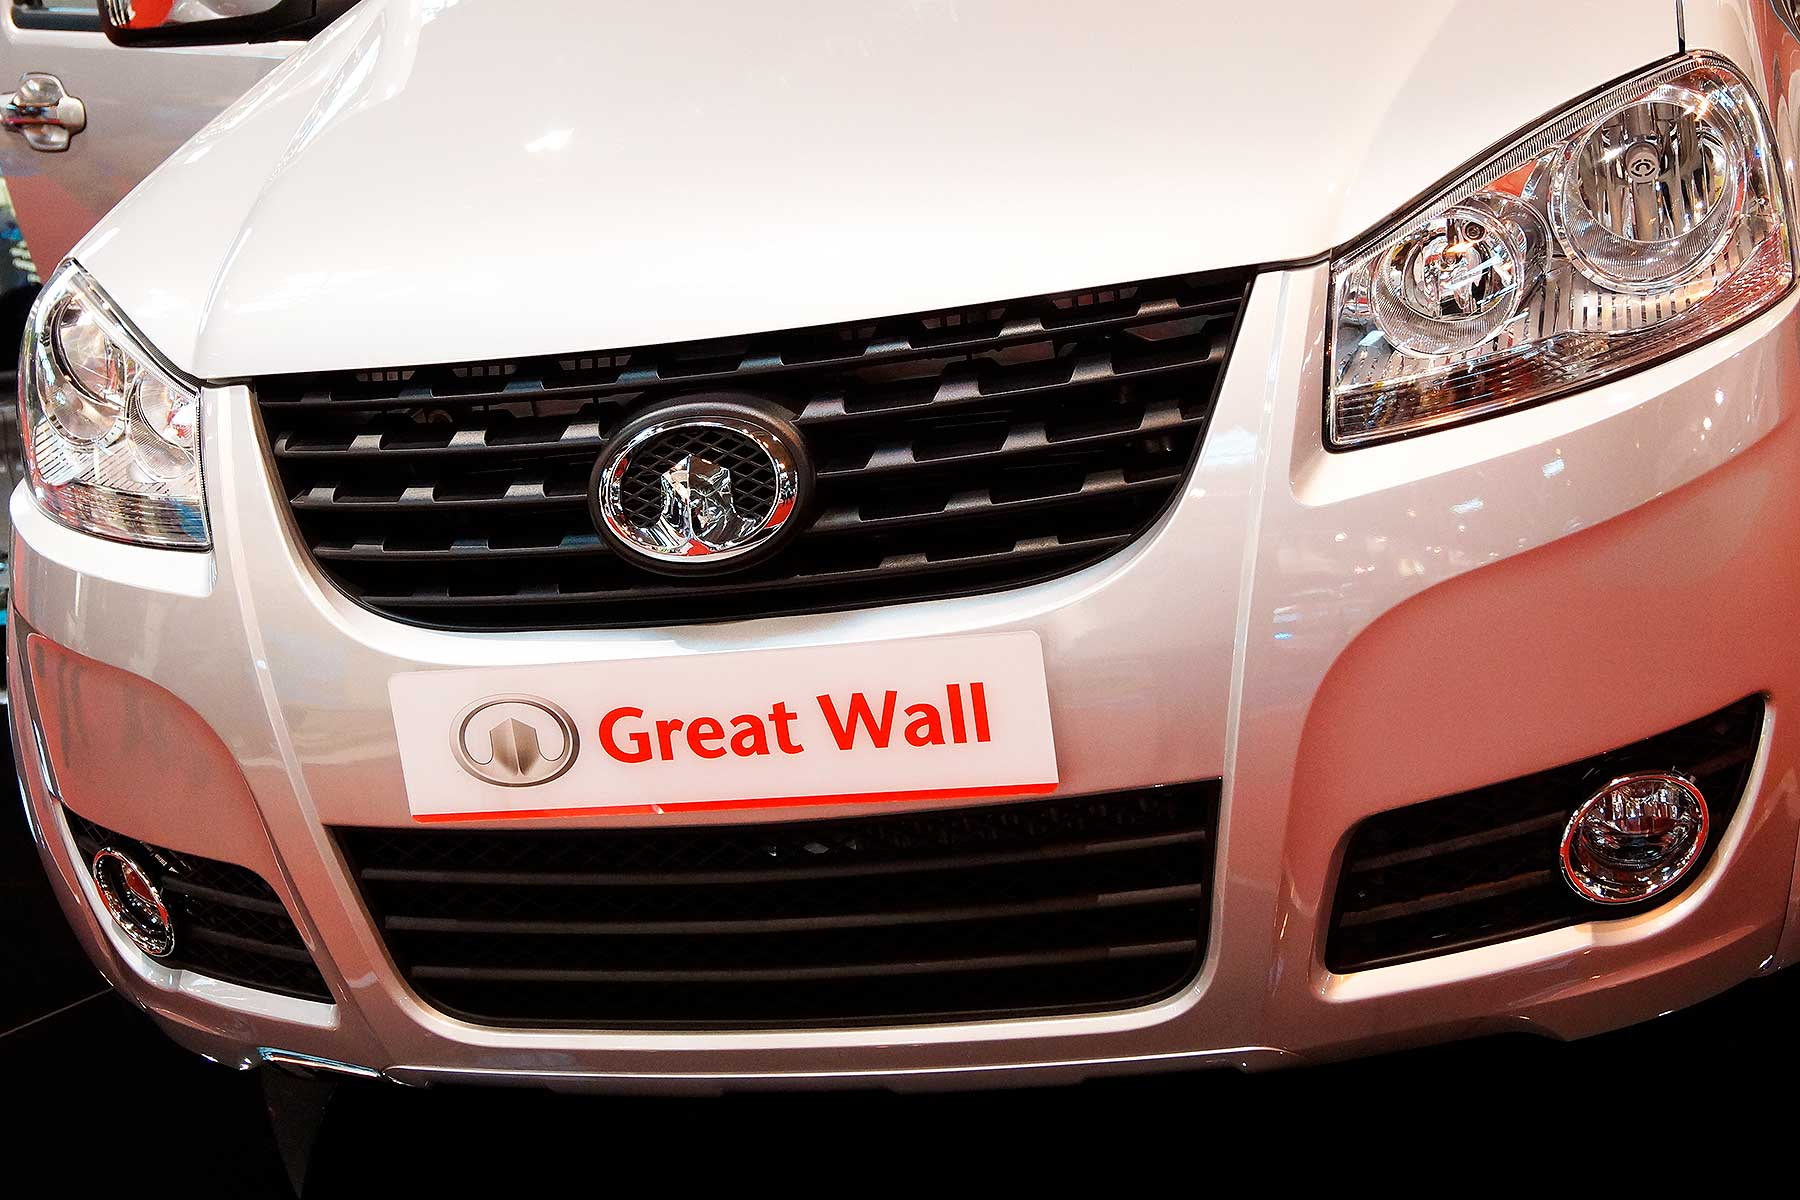 Chinese Car Brand Great Wall Wants To Buy Fiat Chrysler Motoring